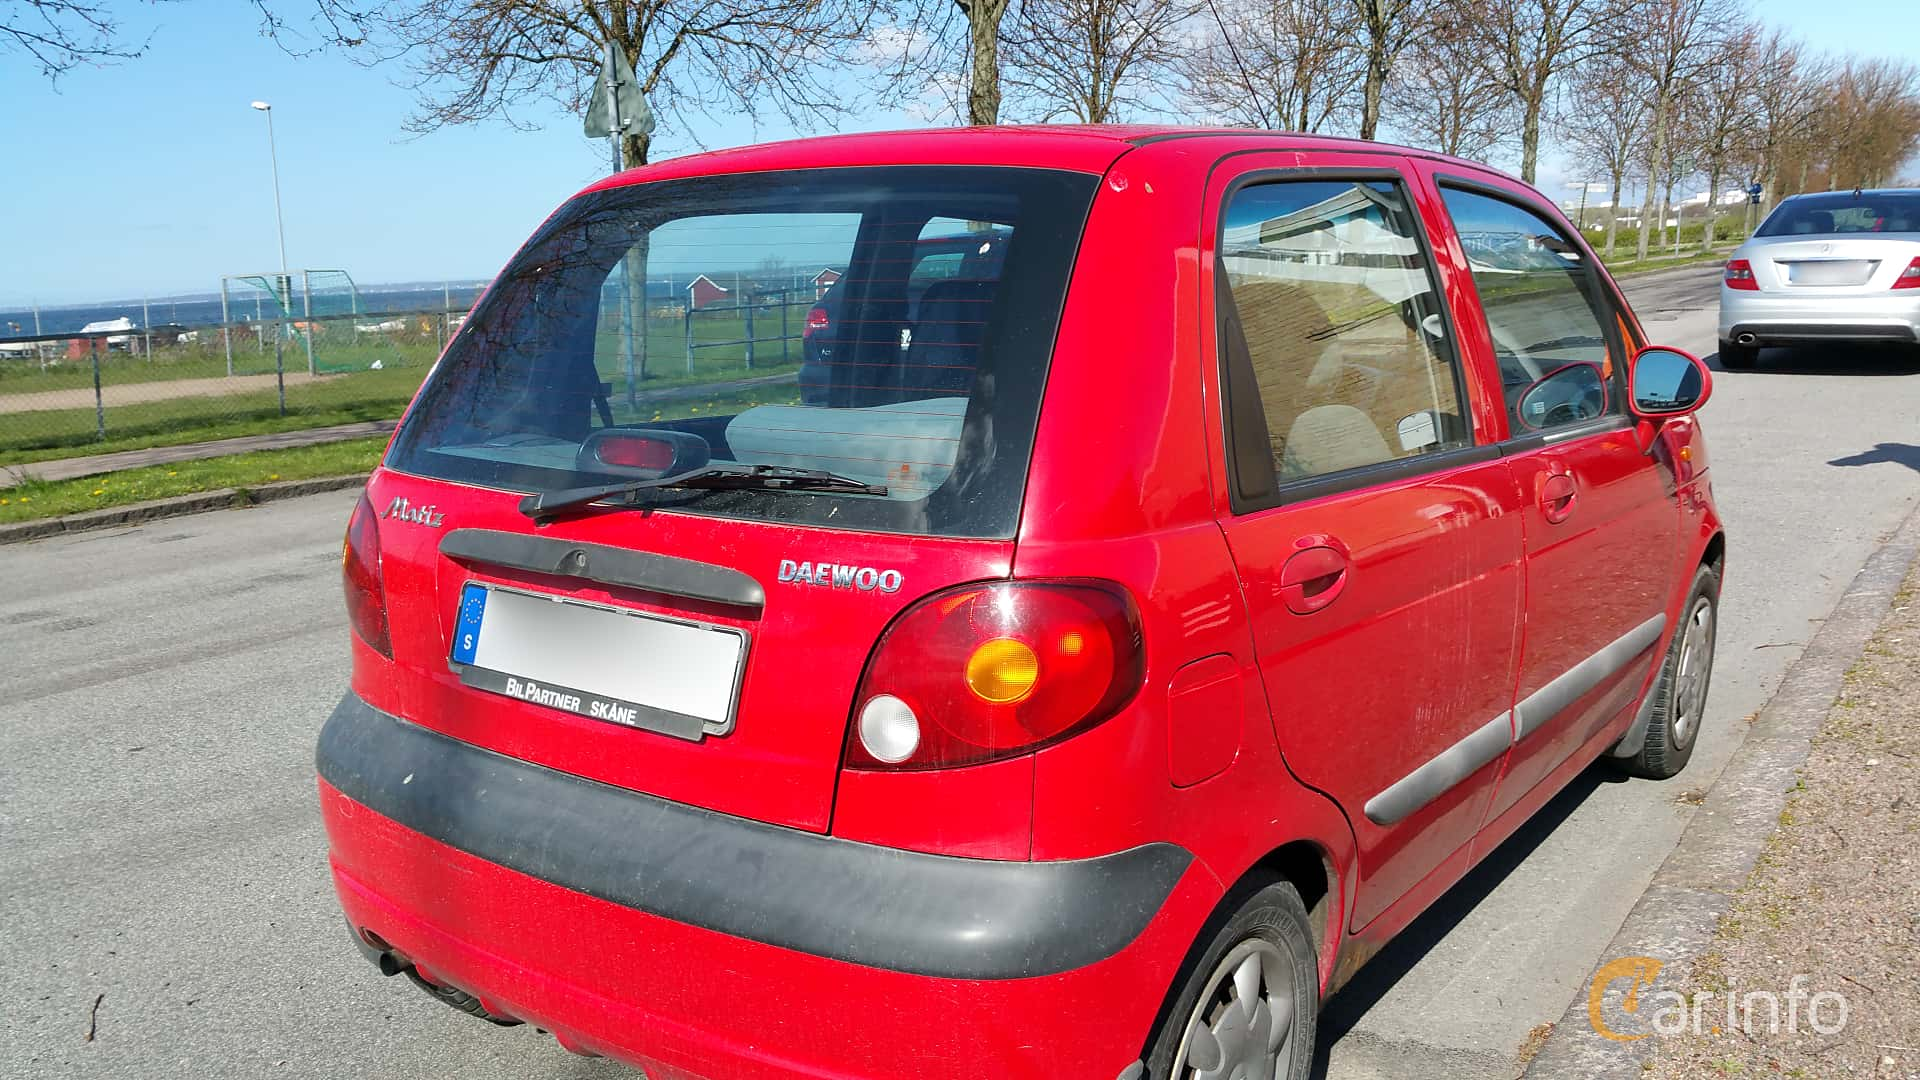 2 Images Of Daewoo Matiz 10 Manual 64hp 2004 By Jarbo Back Side 64ps